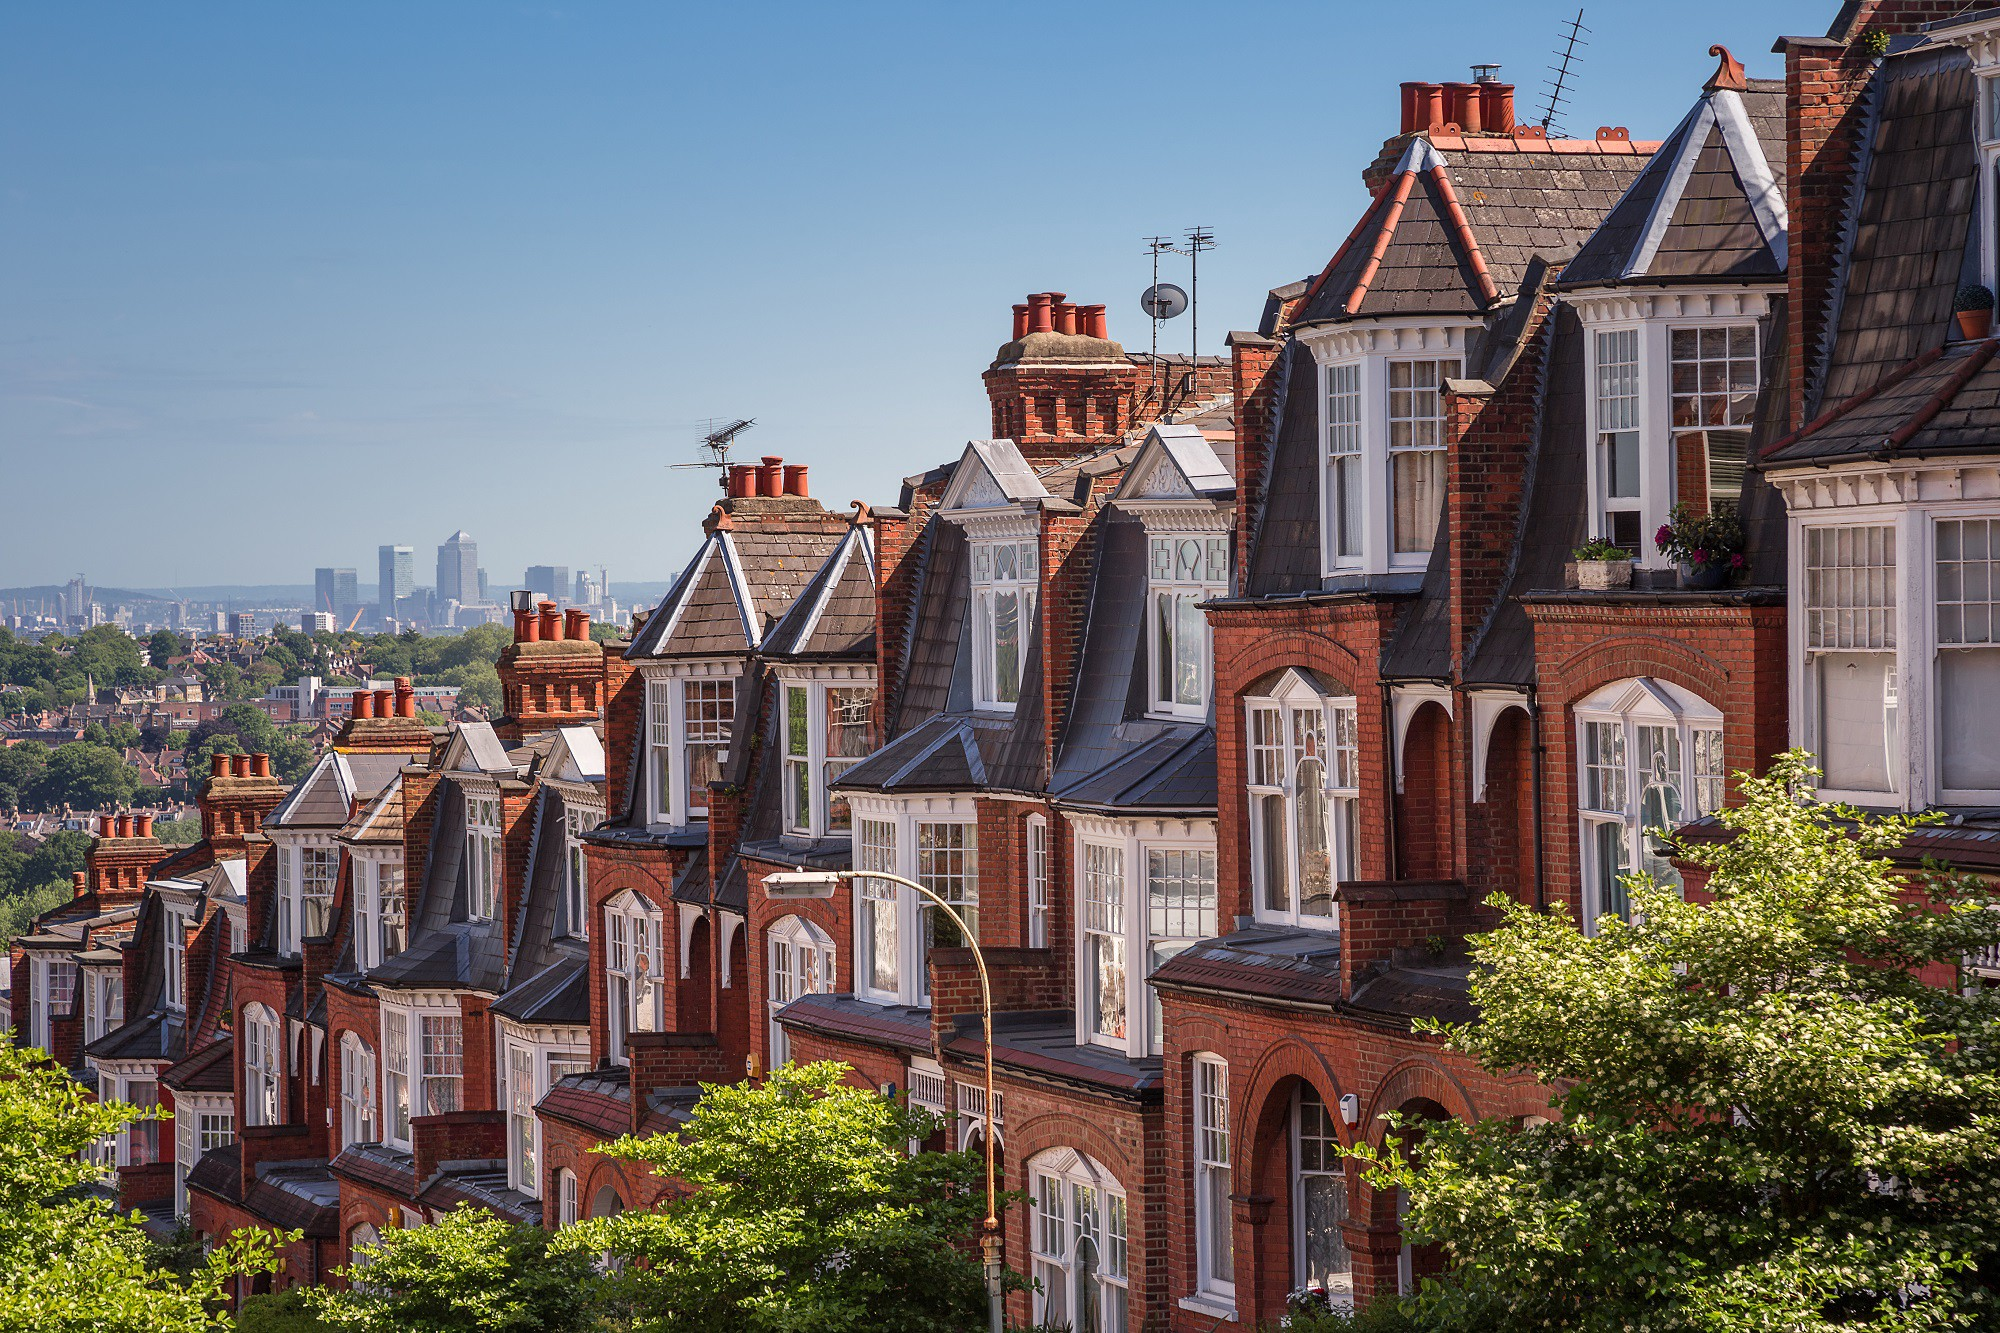 A Prouv Of Plumbing Rogers Rewiring But What Was The How Much Does Your House Cost An Estate Agent Shot Muswell Hill London Hills Housing Would Not Lend Itself To Such Agents